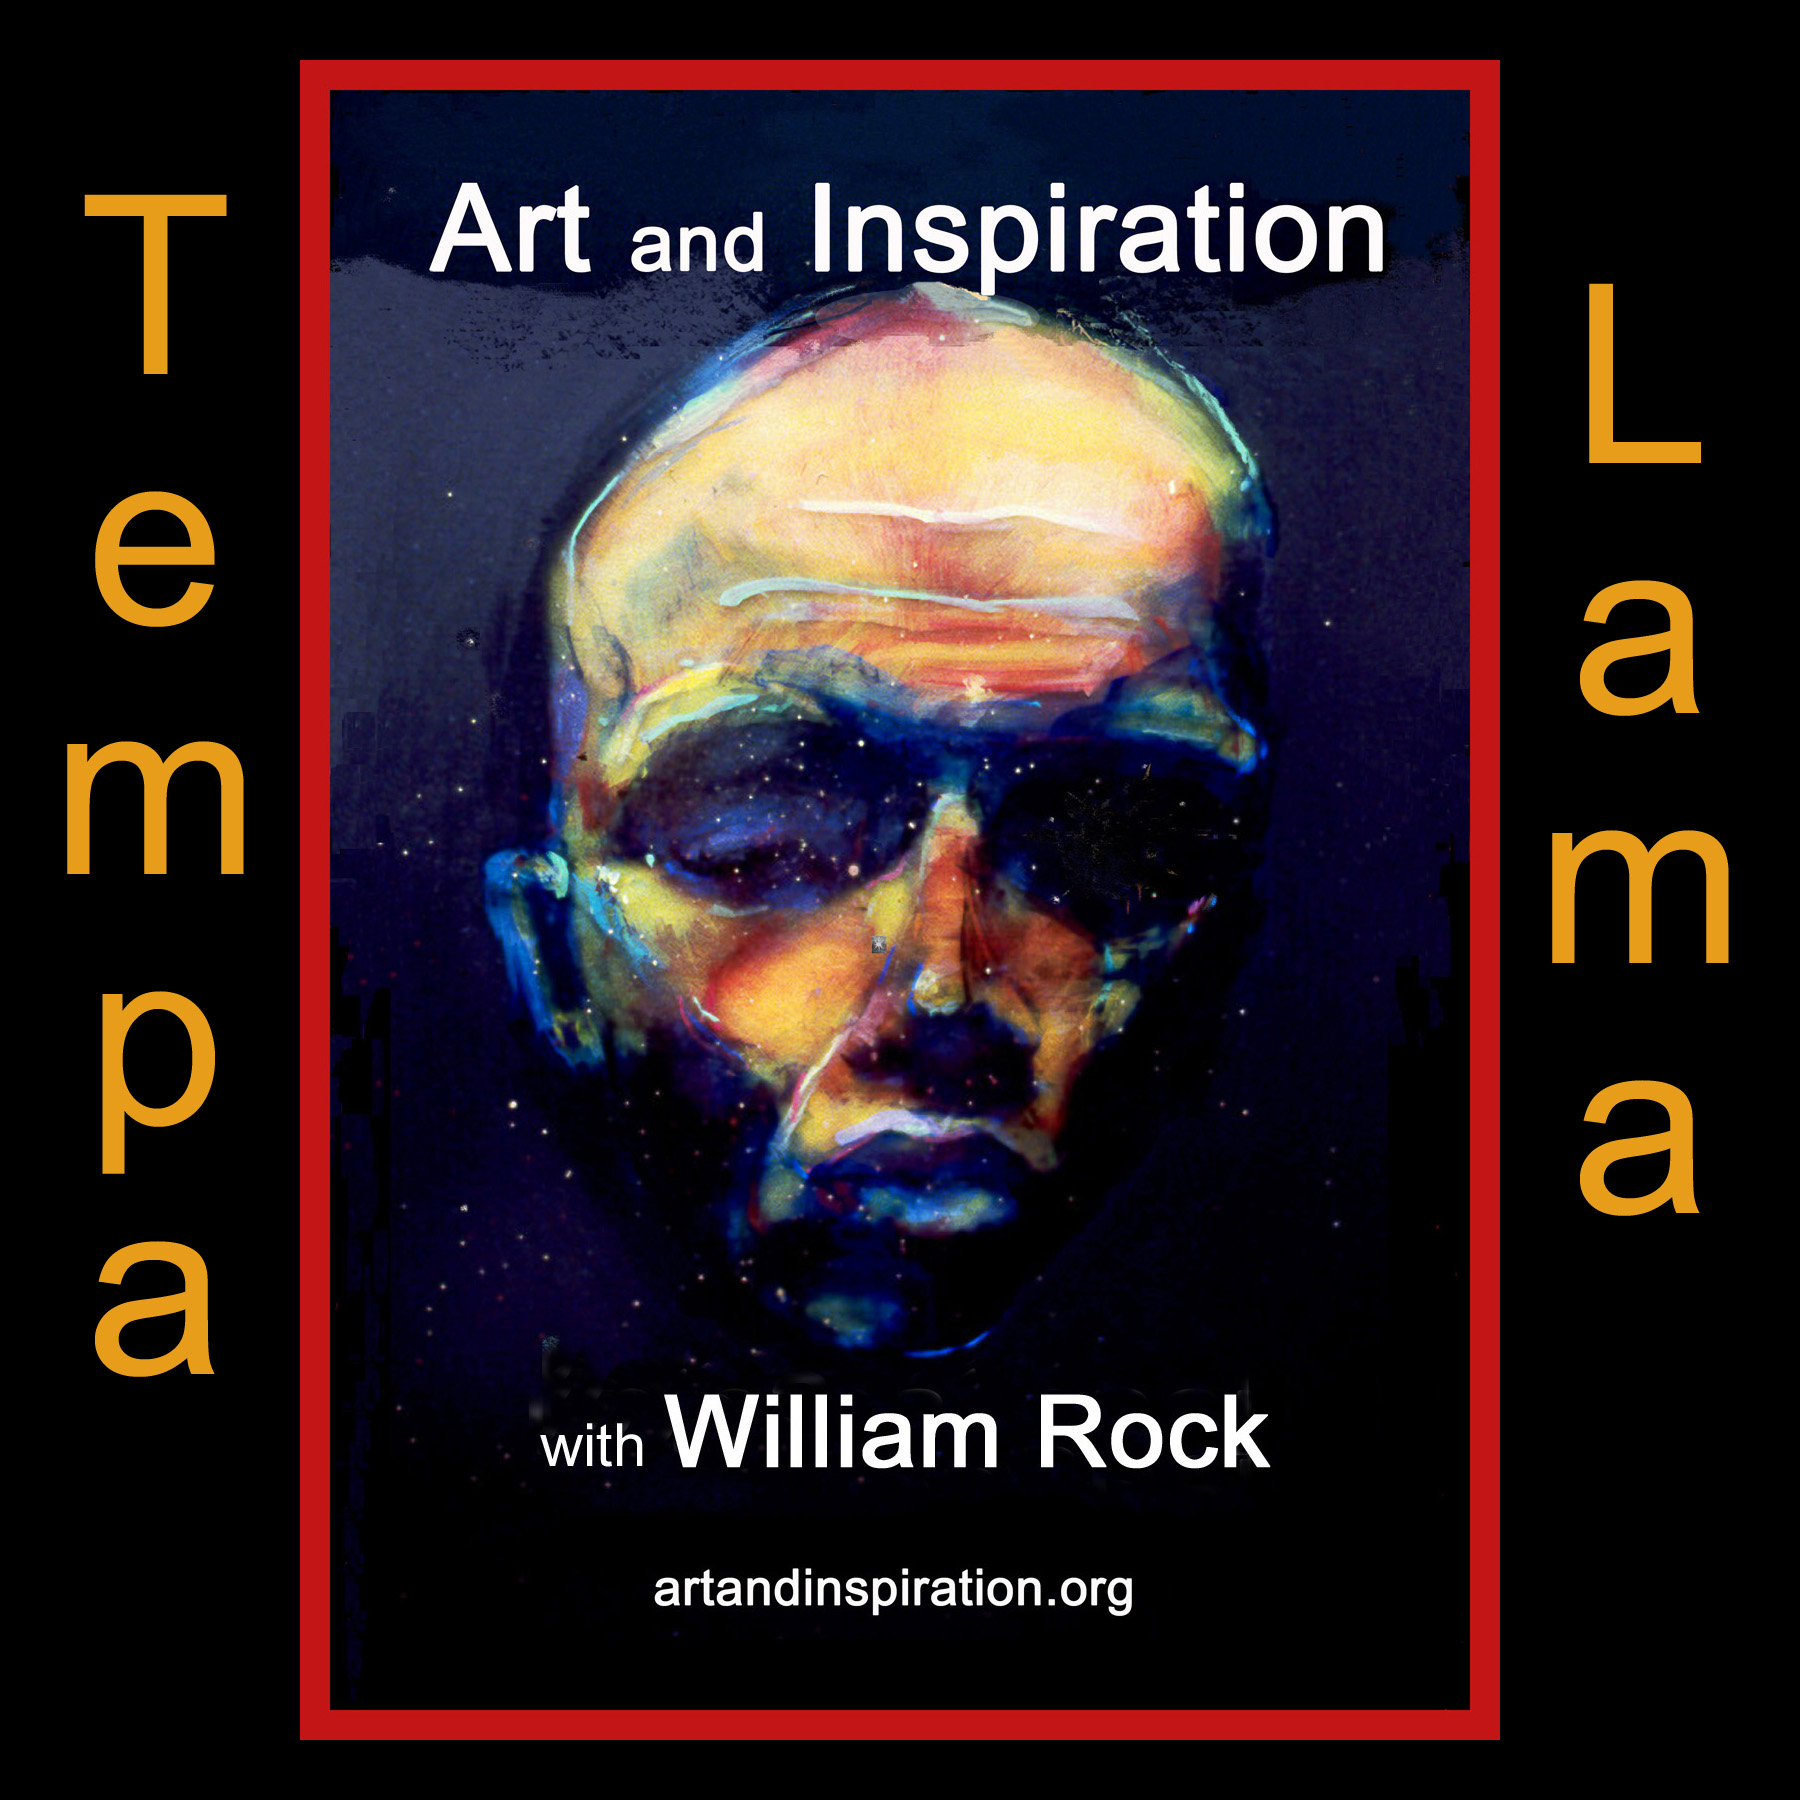 Tempa Lama on Art and Inspiration with William Rock